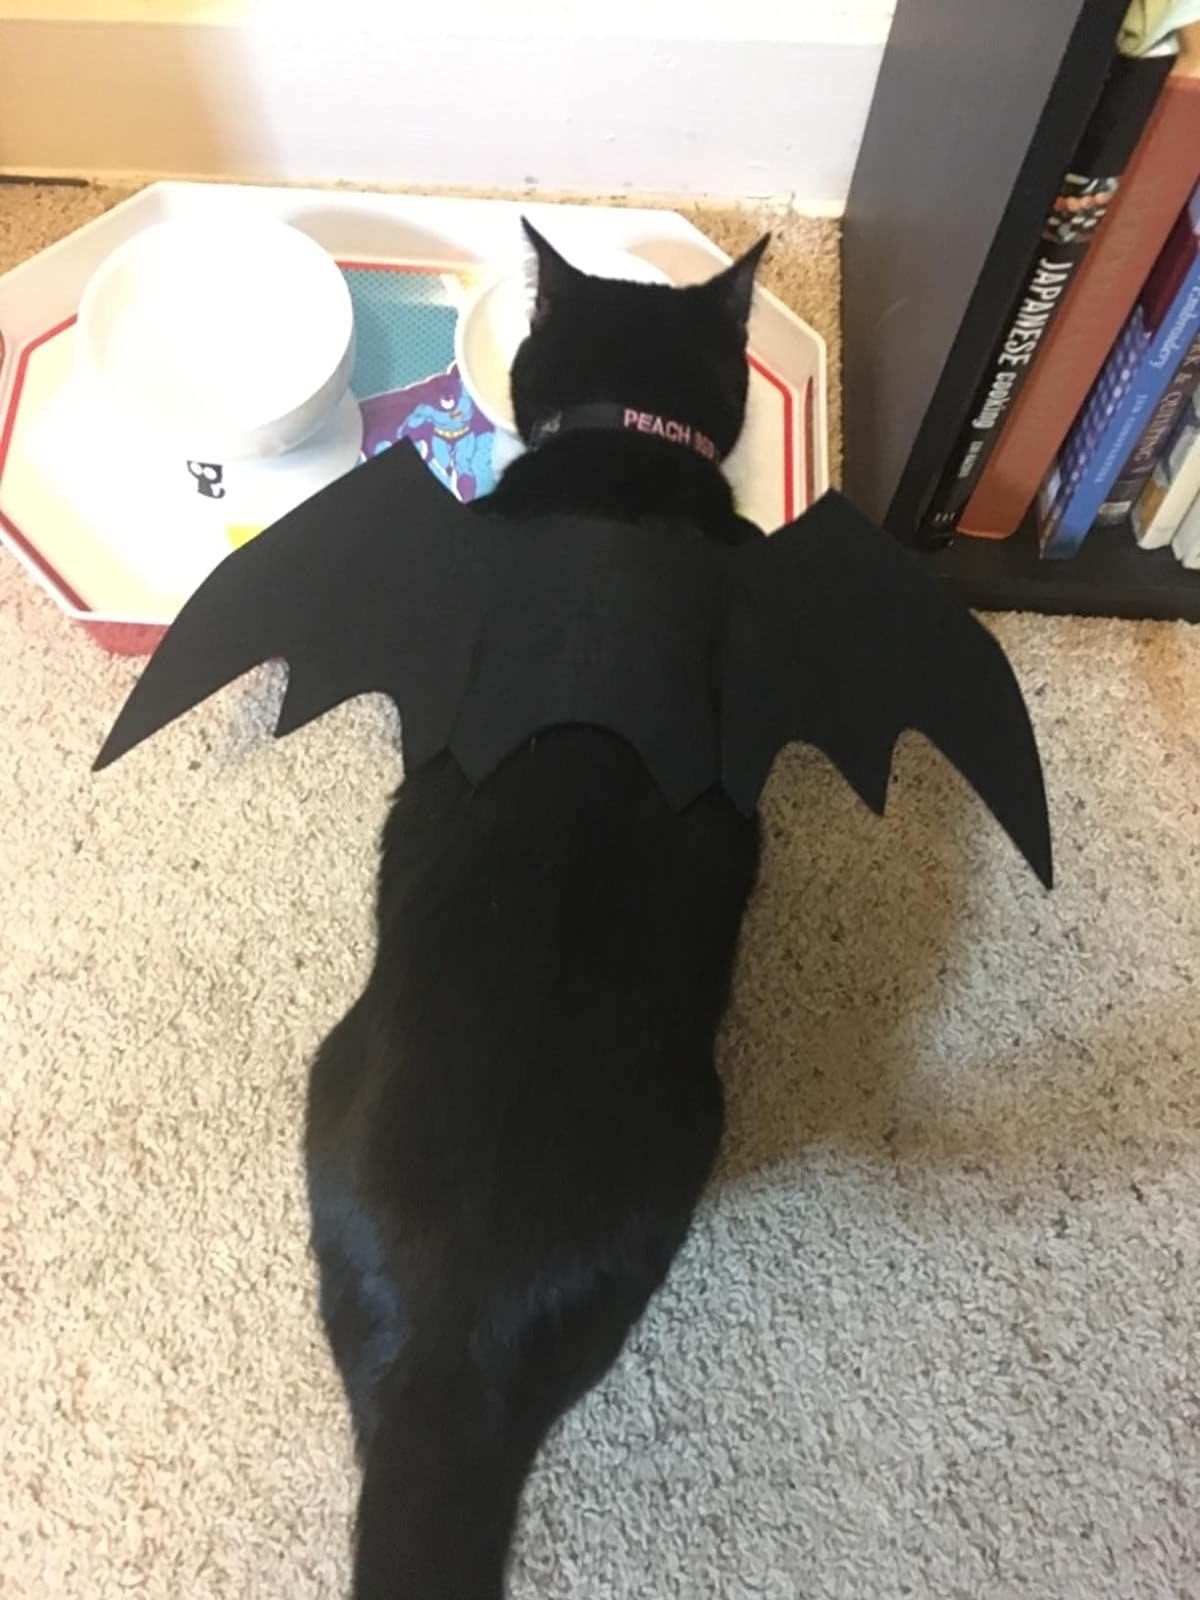 A black cat with the bat wings, which attach around the neck and middle